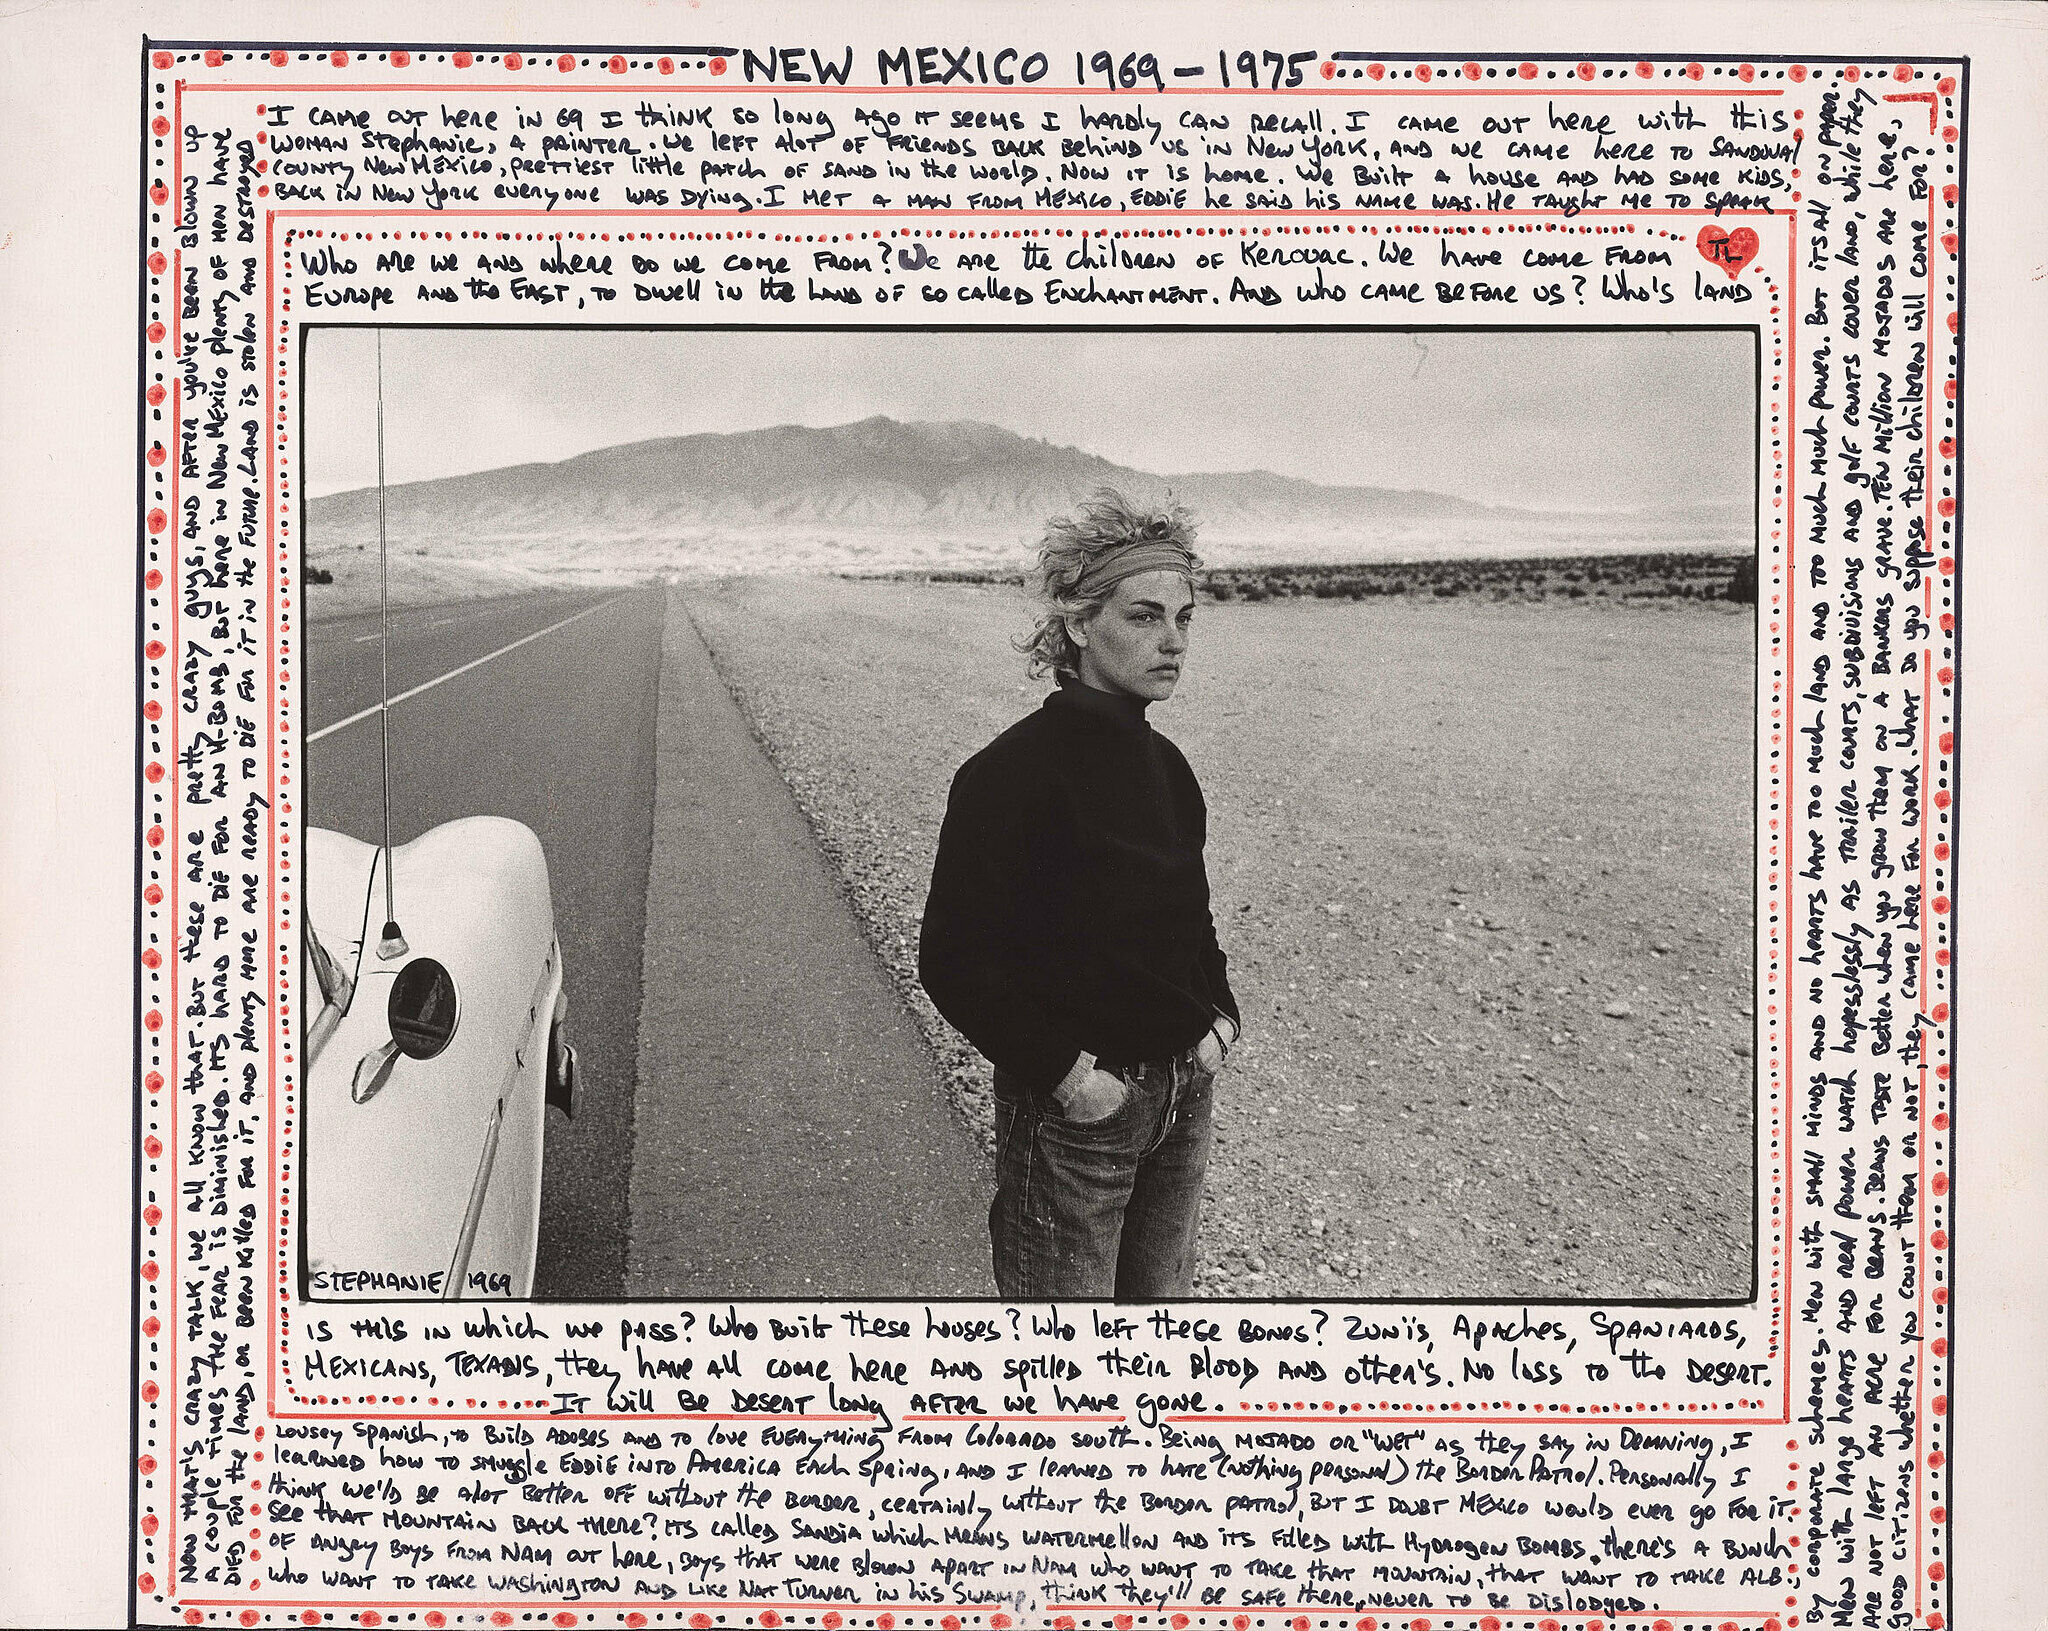 A work by Danny Lyon. A woman stands near a car on a highway in the desert. Writings decorate the border of the image